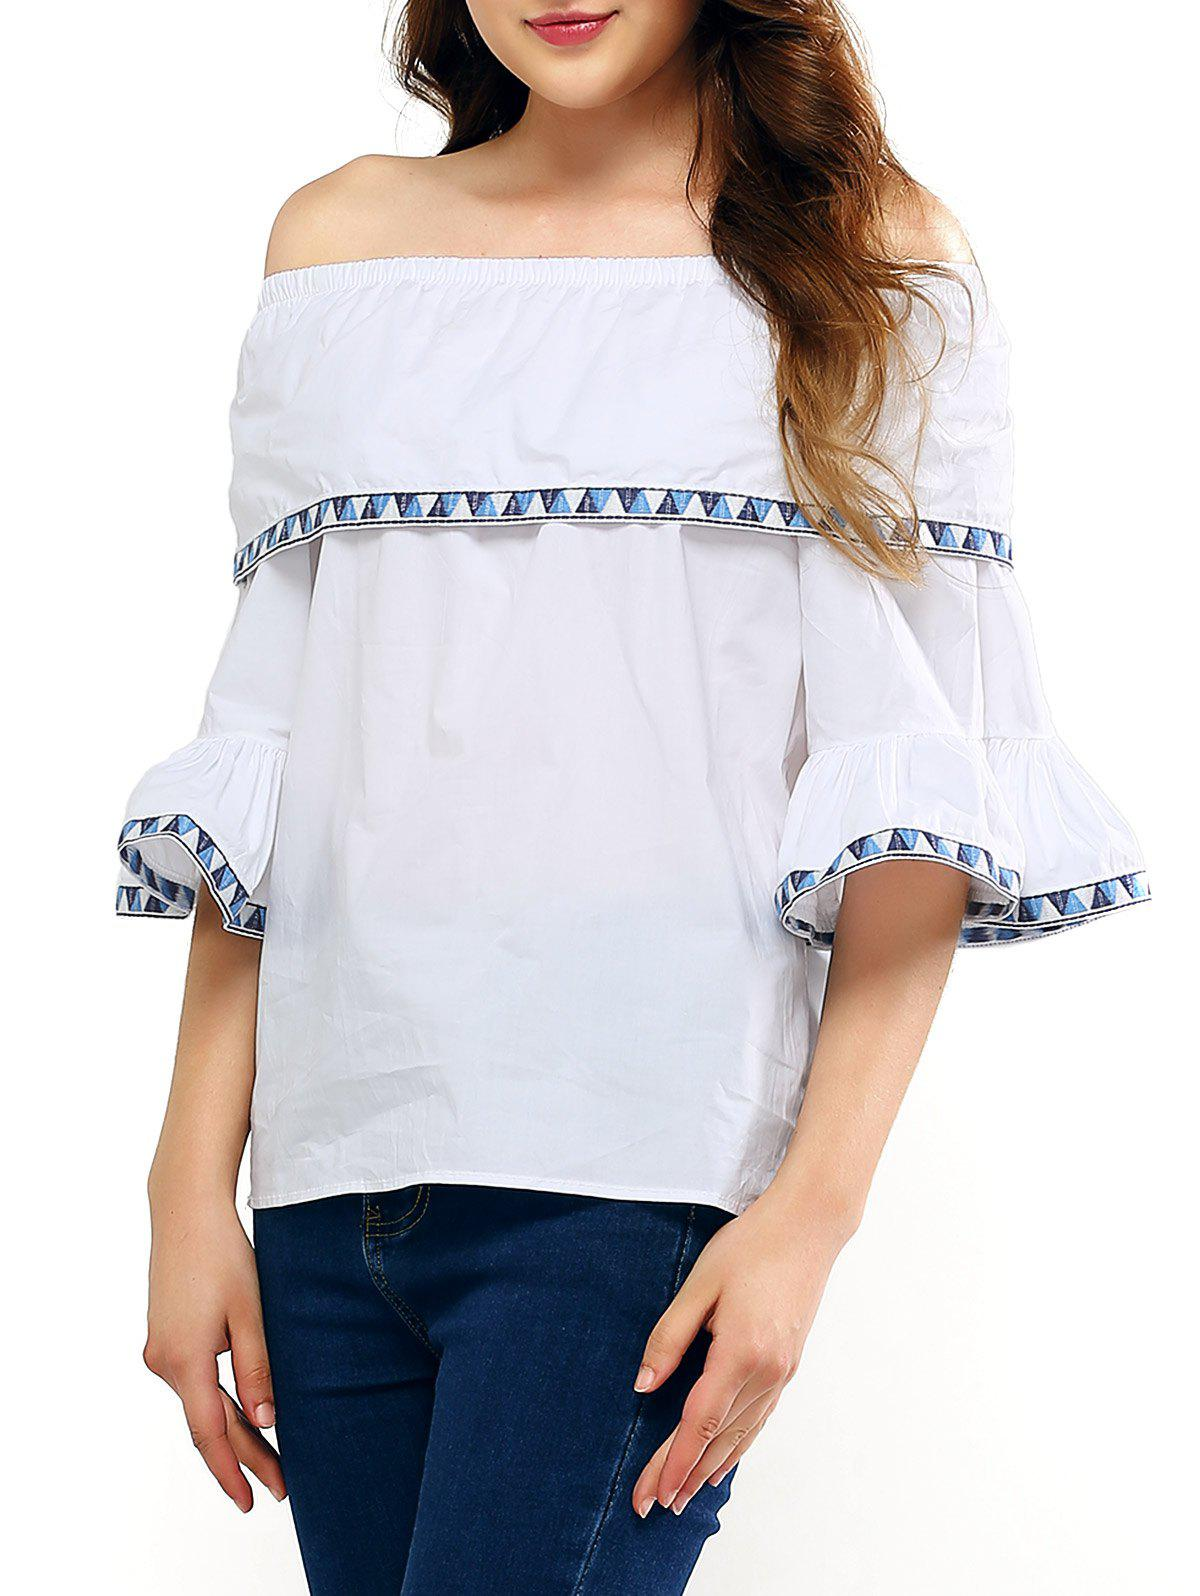 Flare Sleeve Overlay Embroidery Blouse - WHITE ONE SIZE